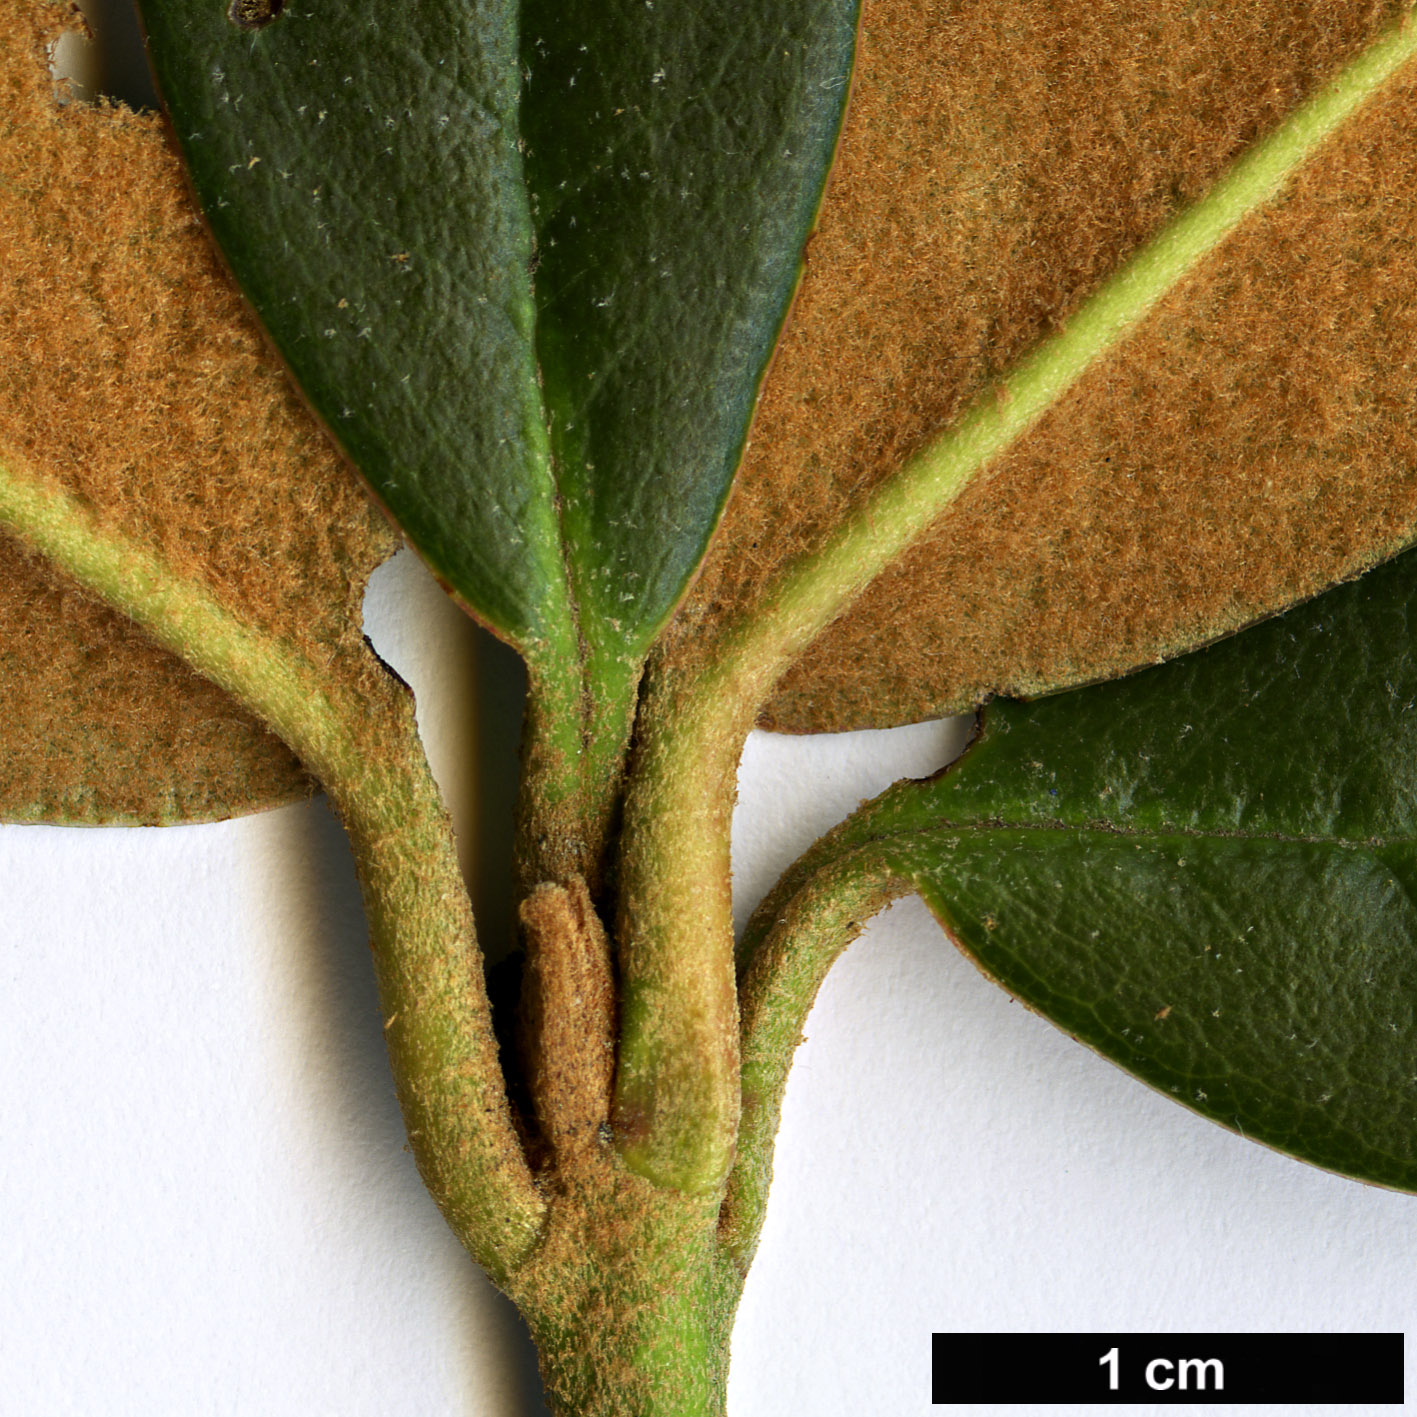 High resolution image: Family: Ericaceae - Genus: Rhododendron - Taxon: haematodes